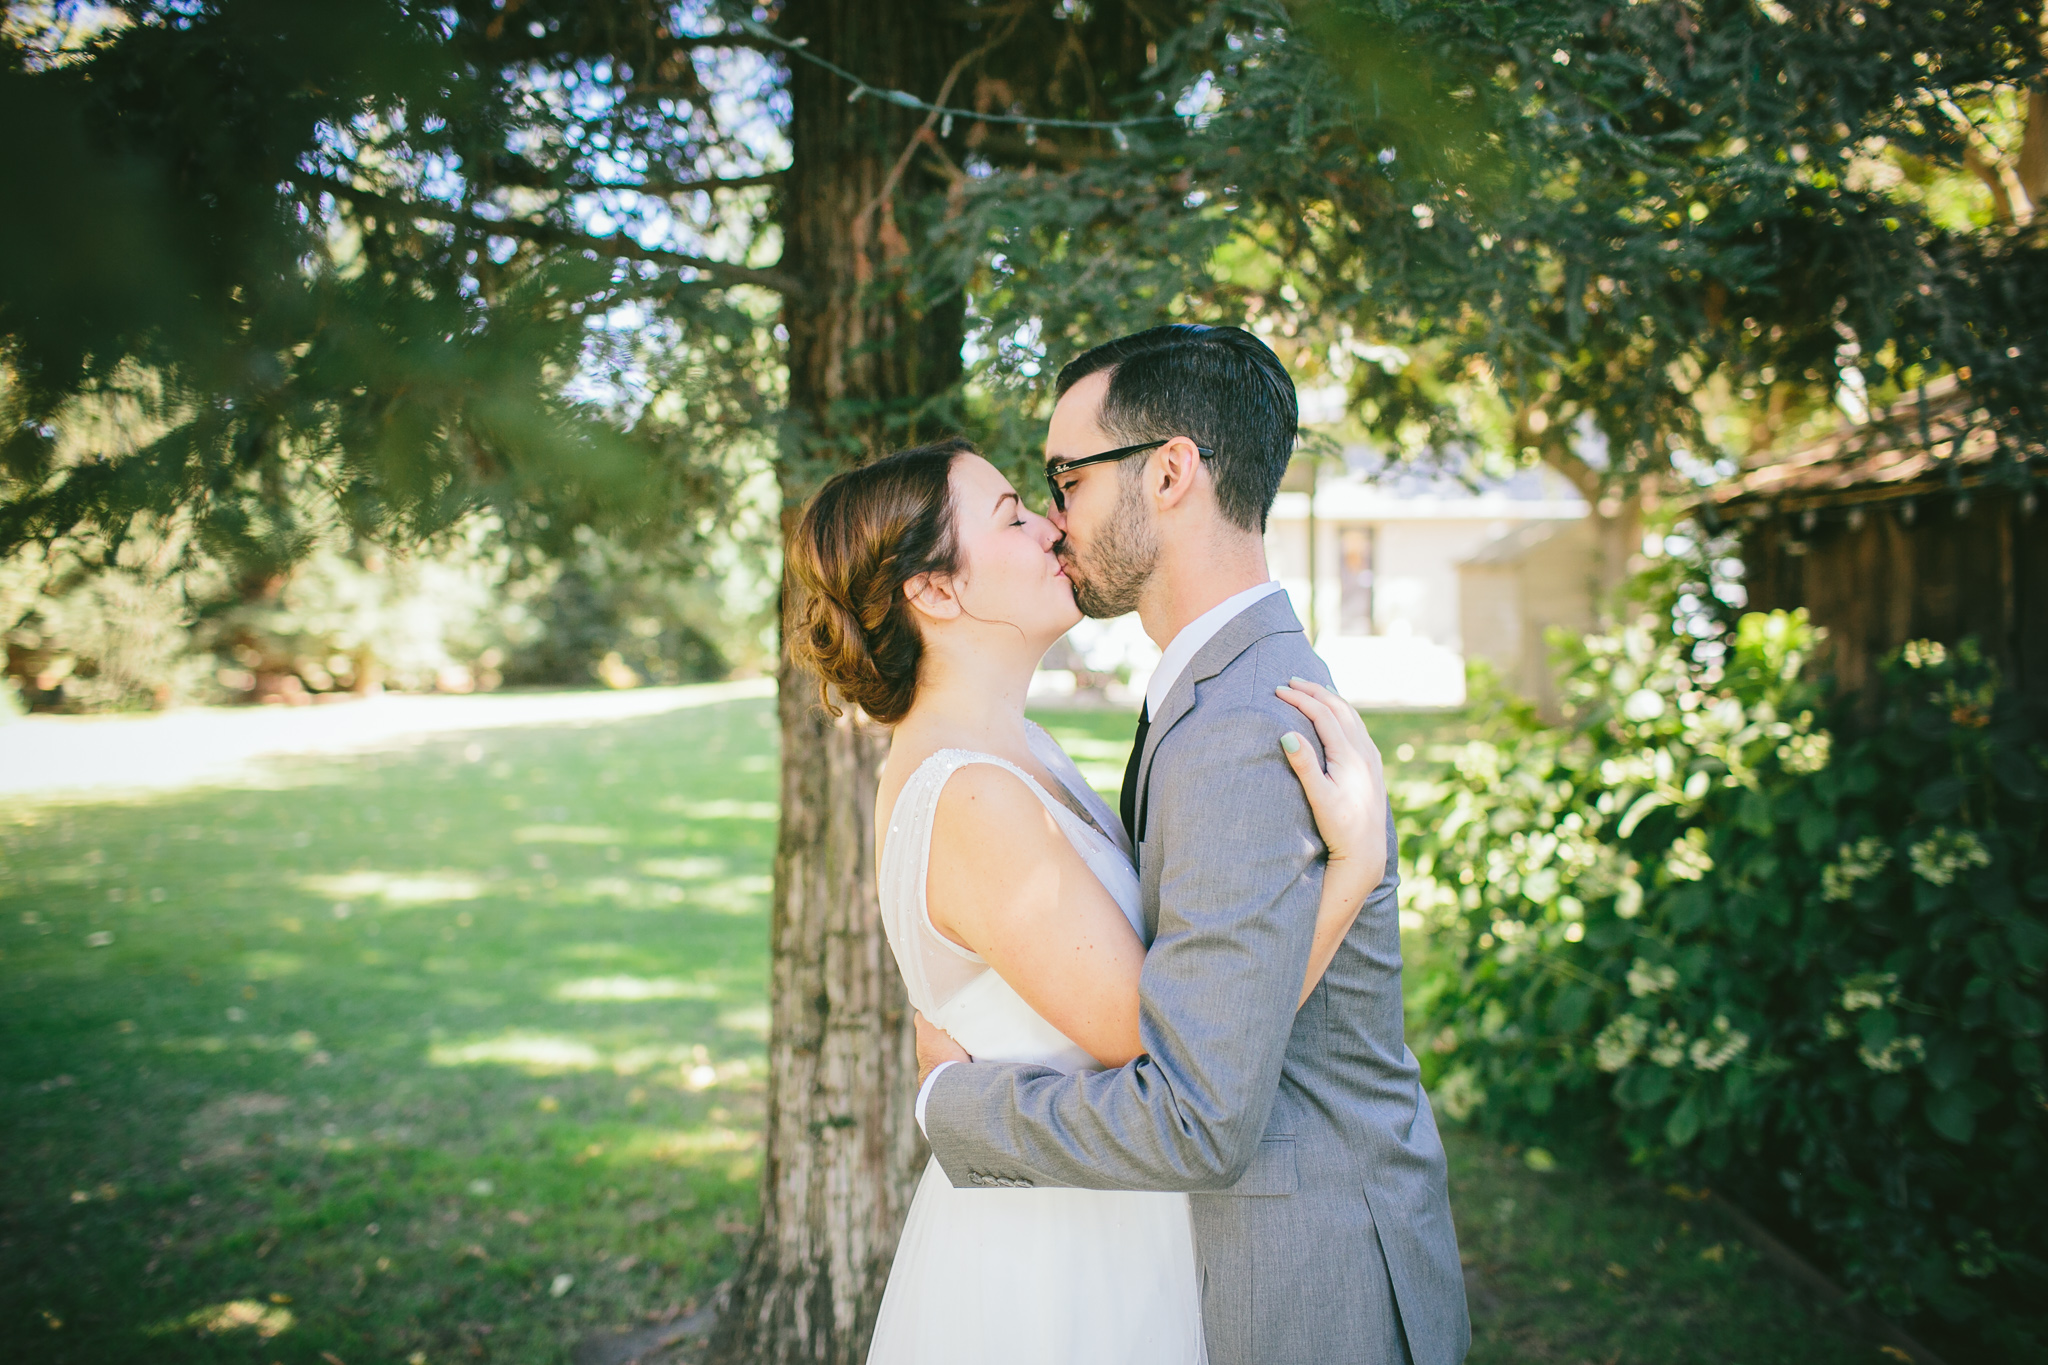 Amy+Nick-WEDDING_KellyBoitanoPhotography20151219_0036